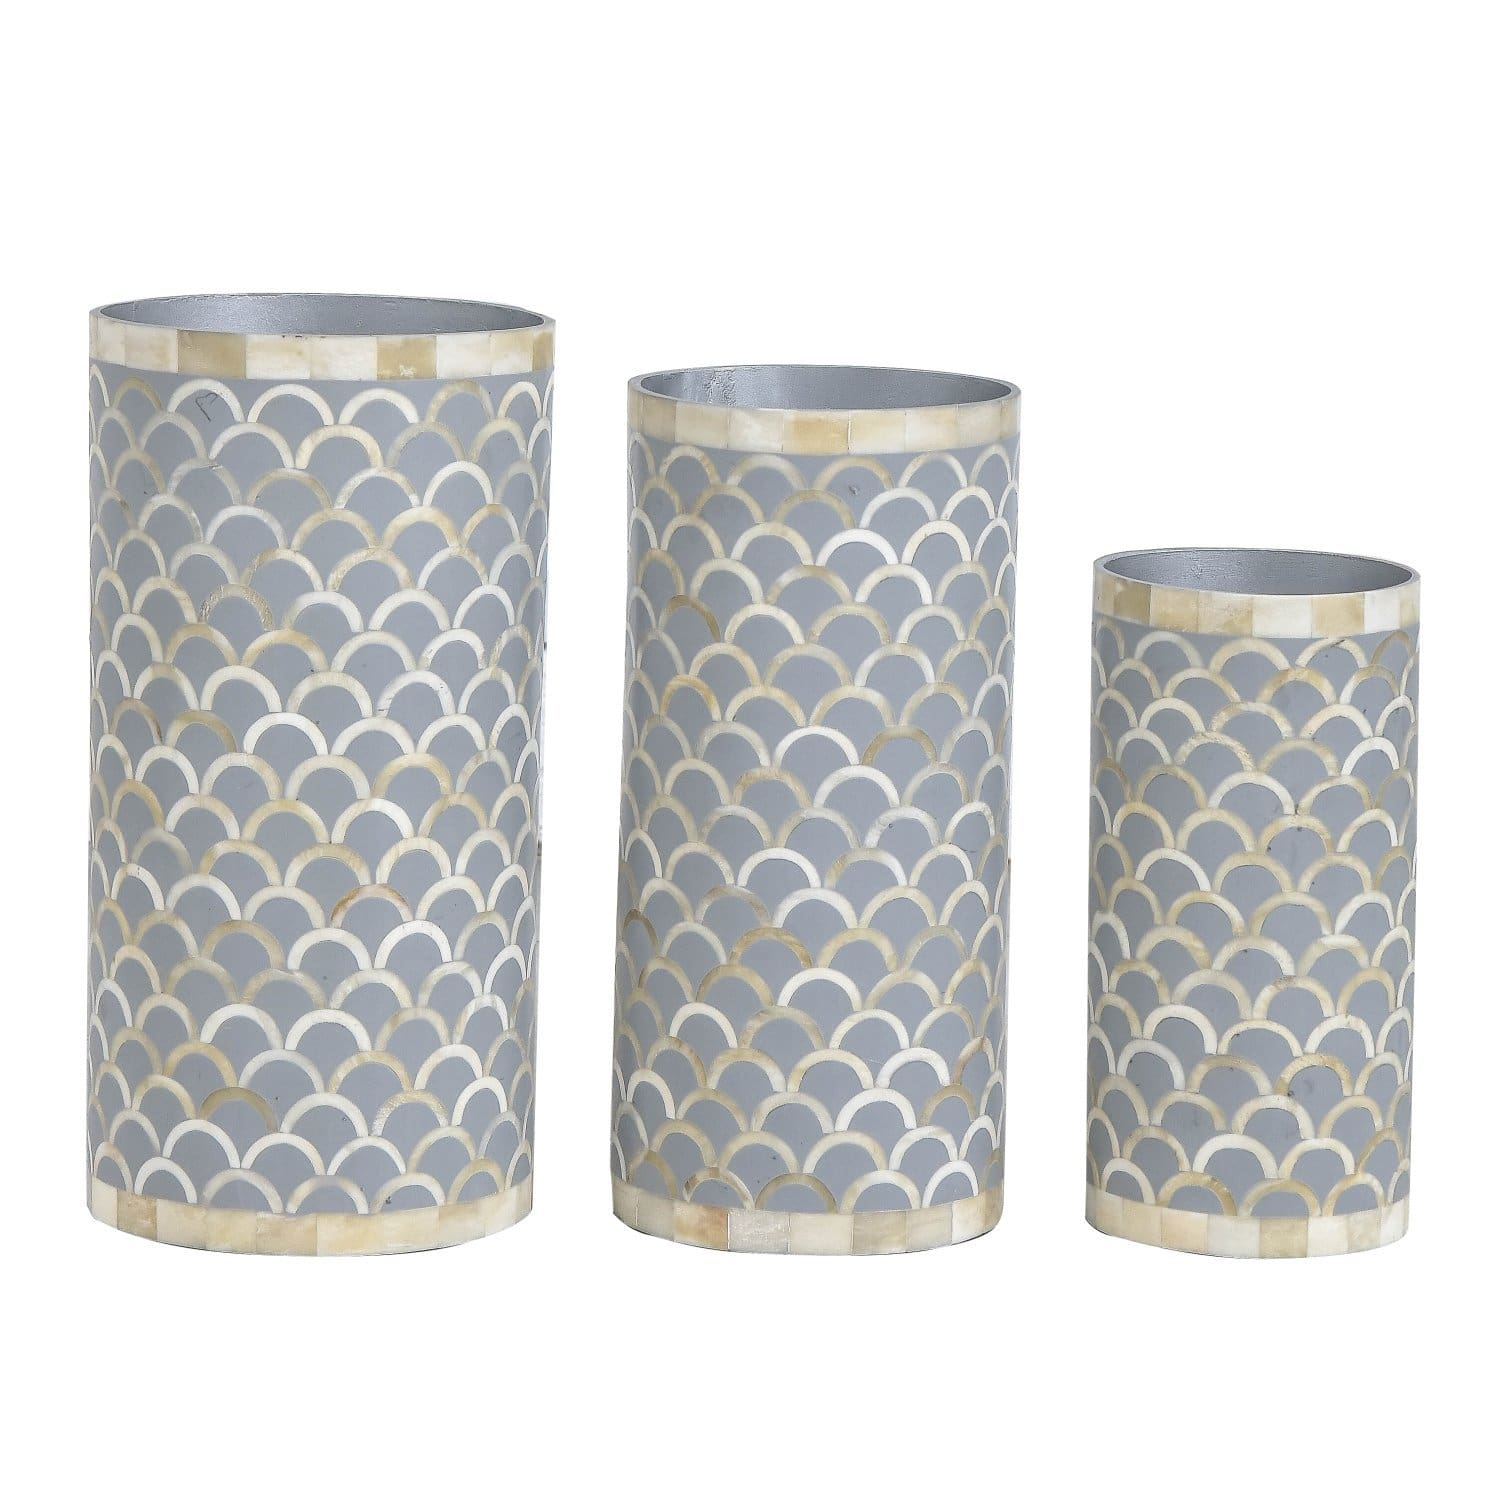 Scallop Vase Collection - Small - Vases